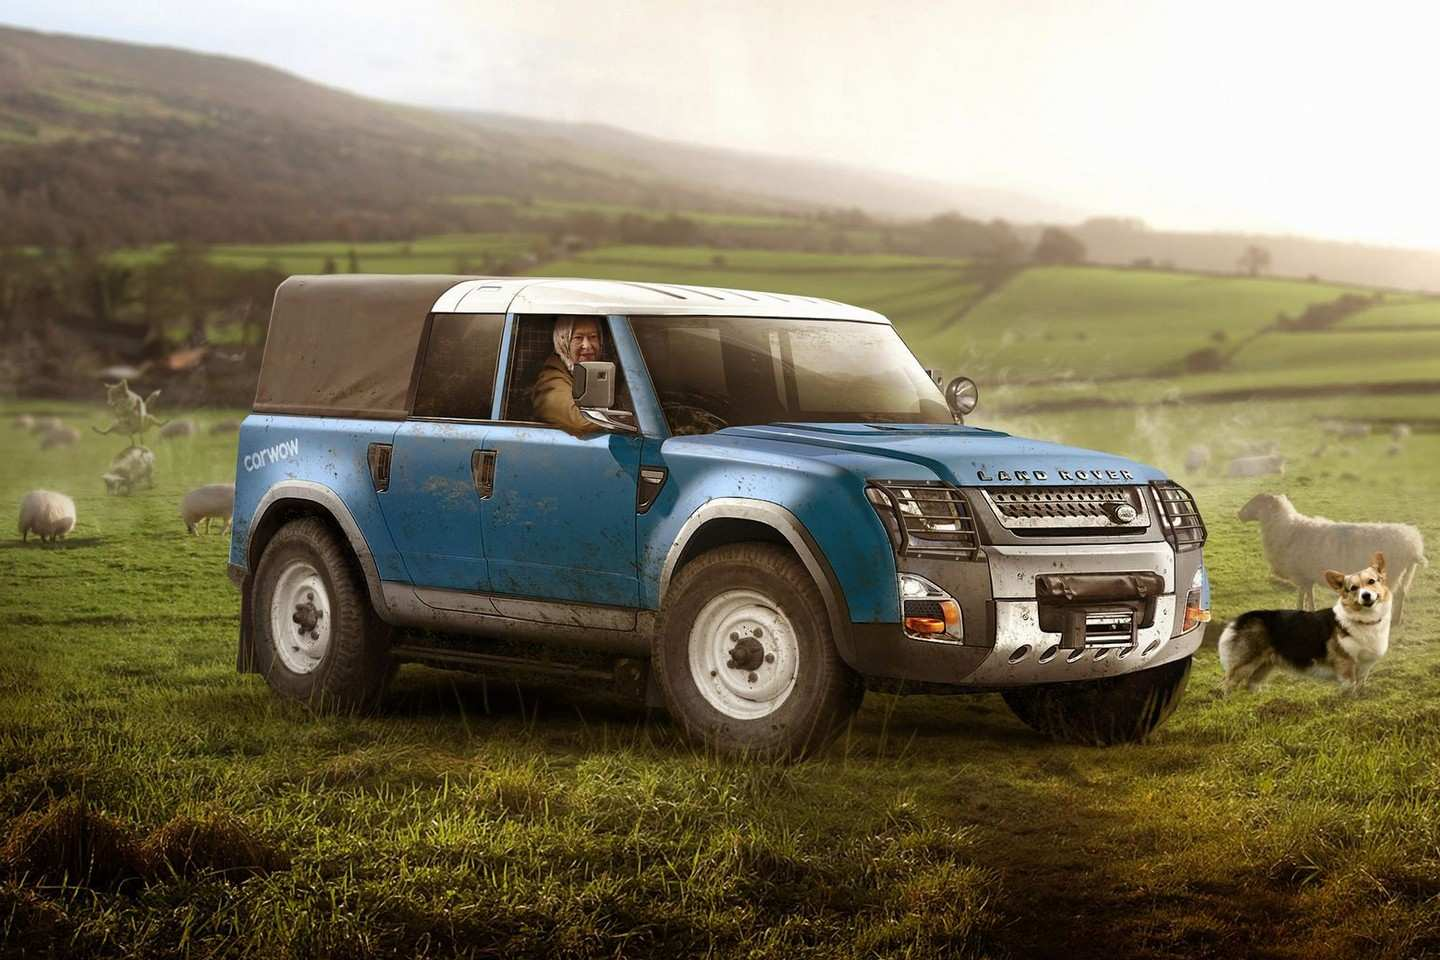 52 Concept of 2019 Land Rover Defender First Drive by 2019 Land Rover Defender